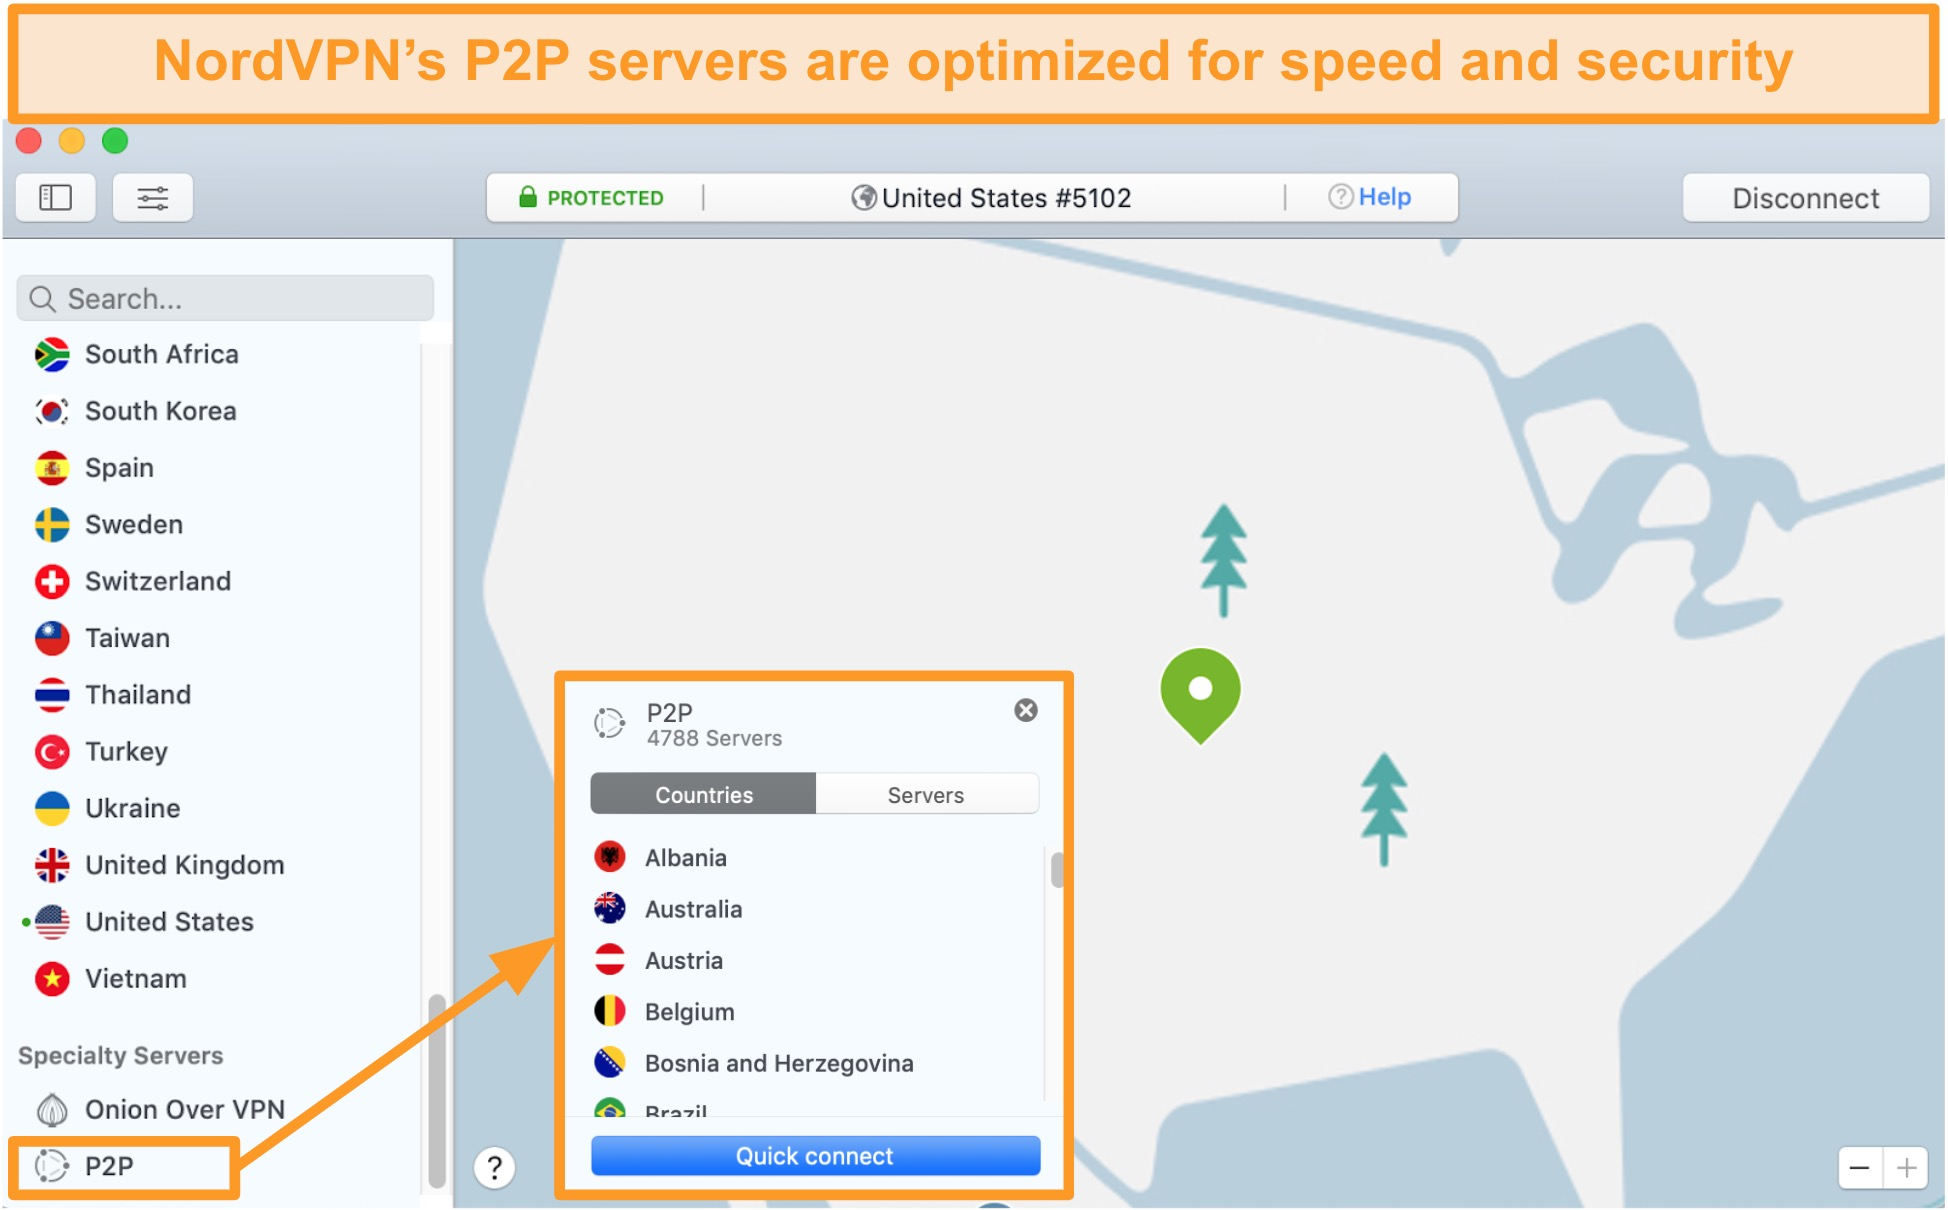 Screenshot of NordVPN's P2P servers on the Mac app